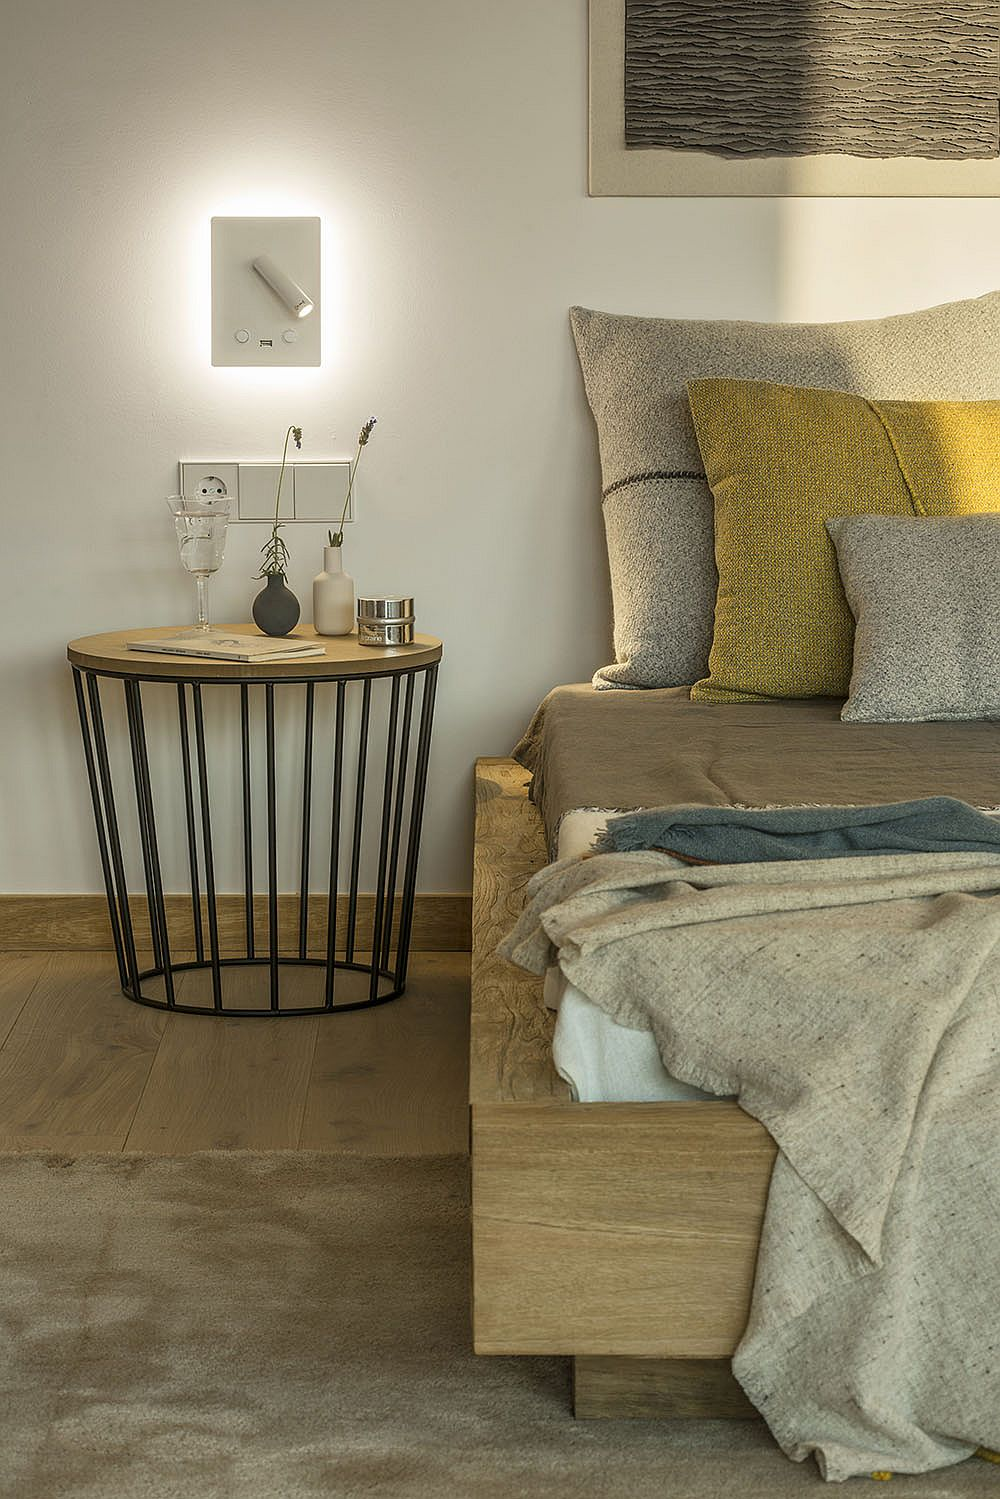 Round modern bedside stand with a metallic base